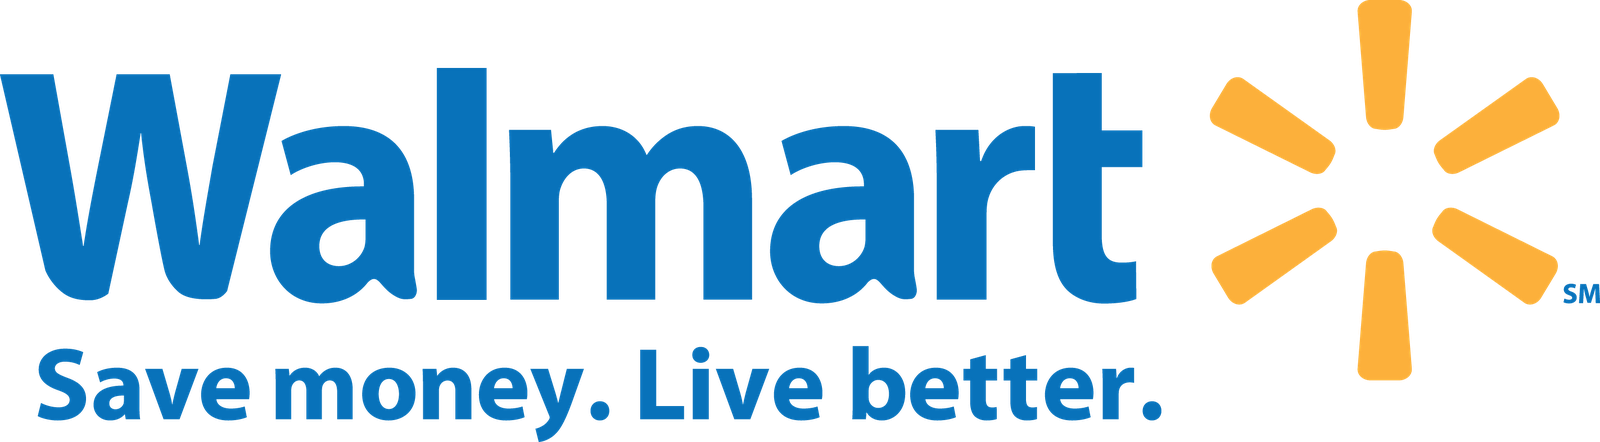 Walmart clipart money freeuse Walmart Logo Clipart freeuse